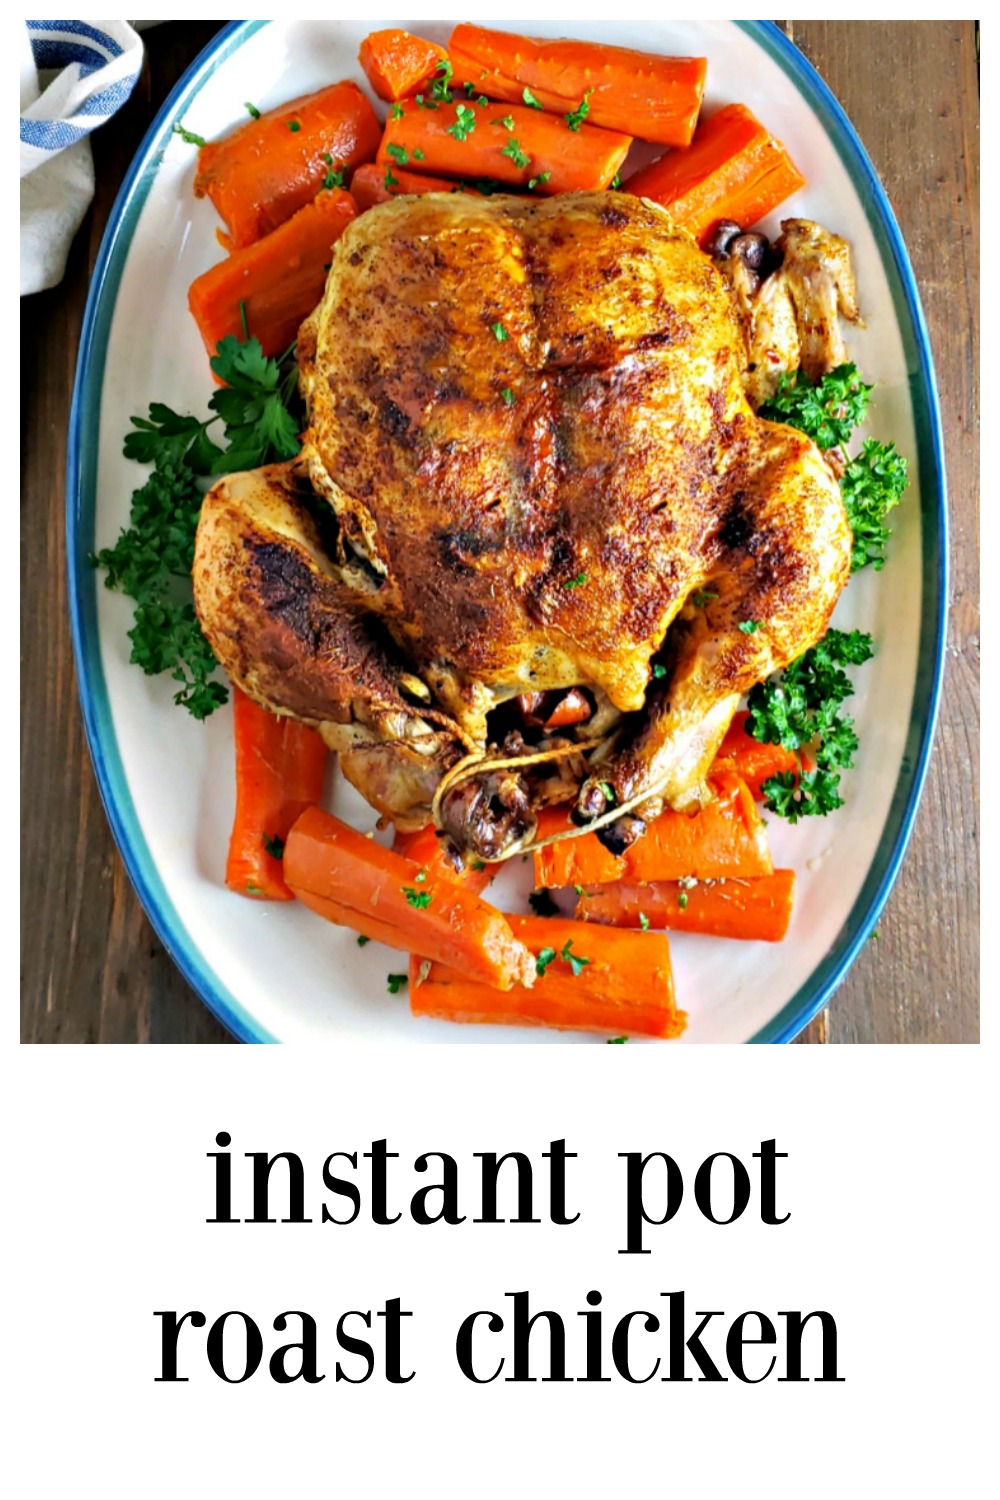 Instant Pot Roasted Chicken is the BEST way to get a delish, flavorful chicken and it's so easy it's pretty much a toss in the pot no brainer recipe! Broil quickly for crispiest skin ever! #InstantPotChicken #InstantPotRoastChicken #InstantPotRotisserieChicken #EasyInstantPotChicken #EasyInstantPotRecipe #InstantPotRecipe #InstantPotRoastedChicken